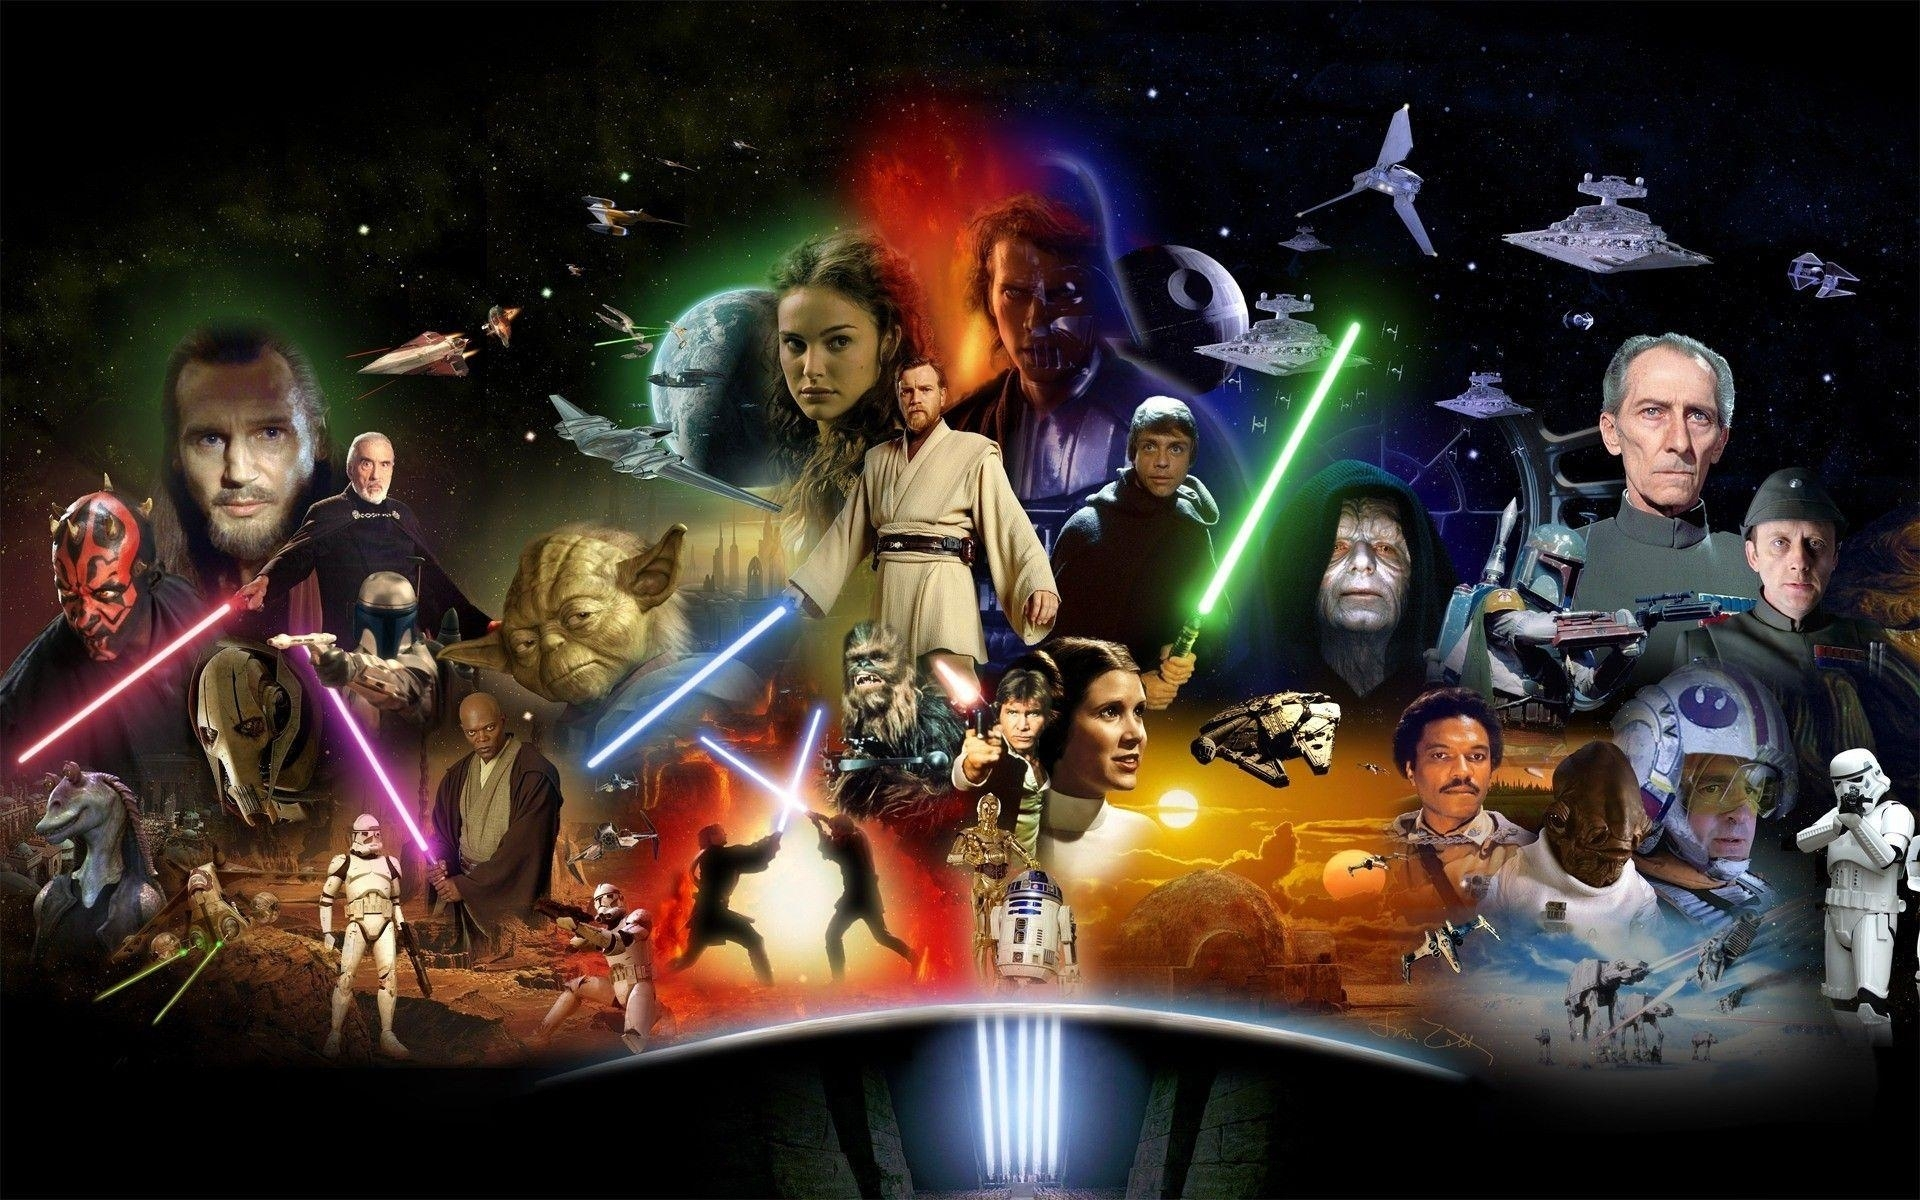 star wars character wallpapers - wallpaper cave